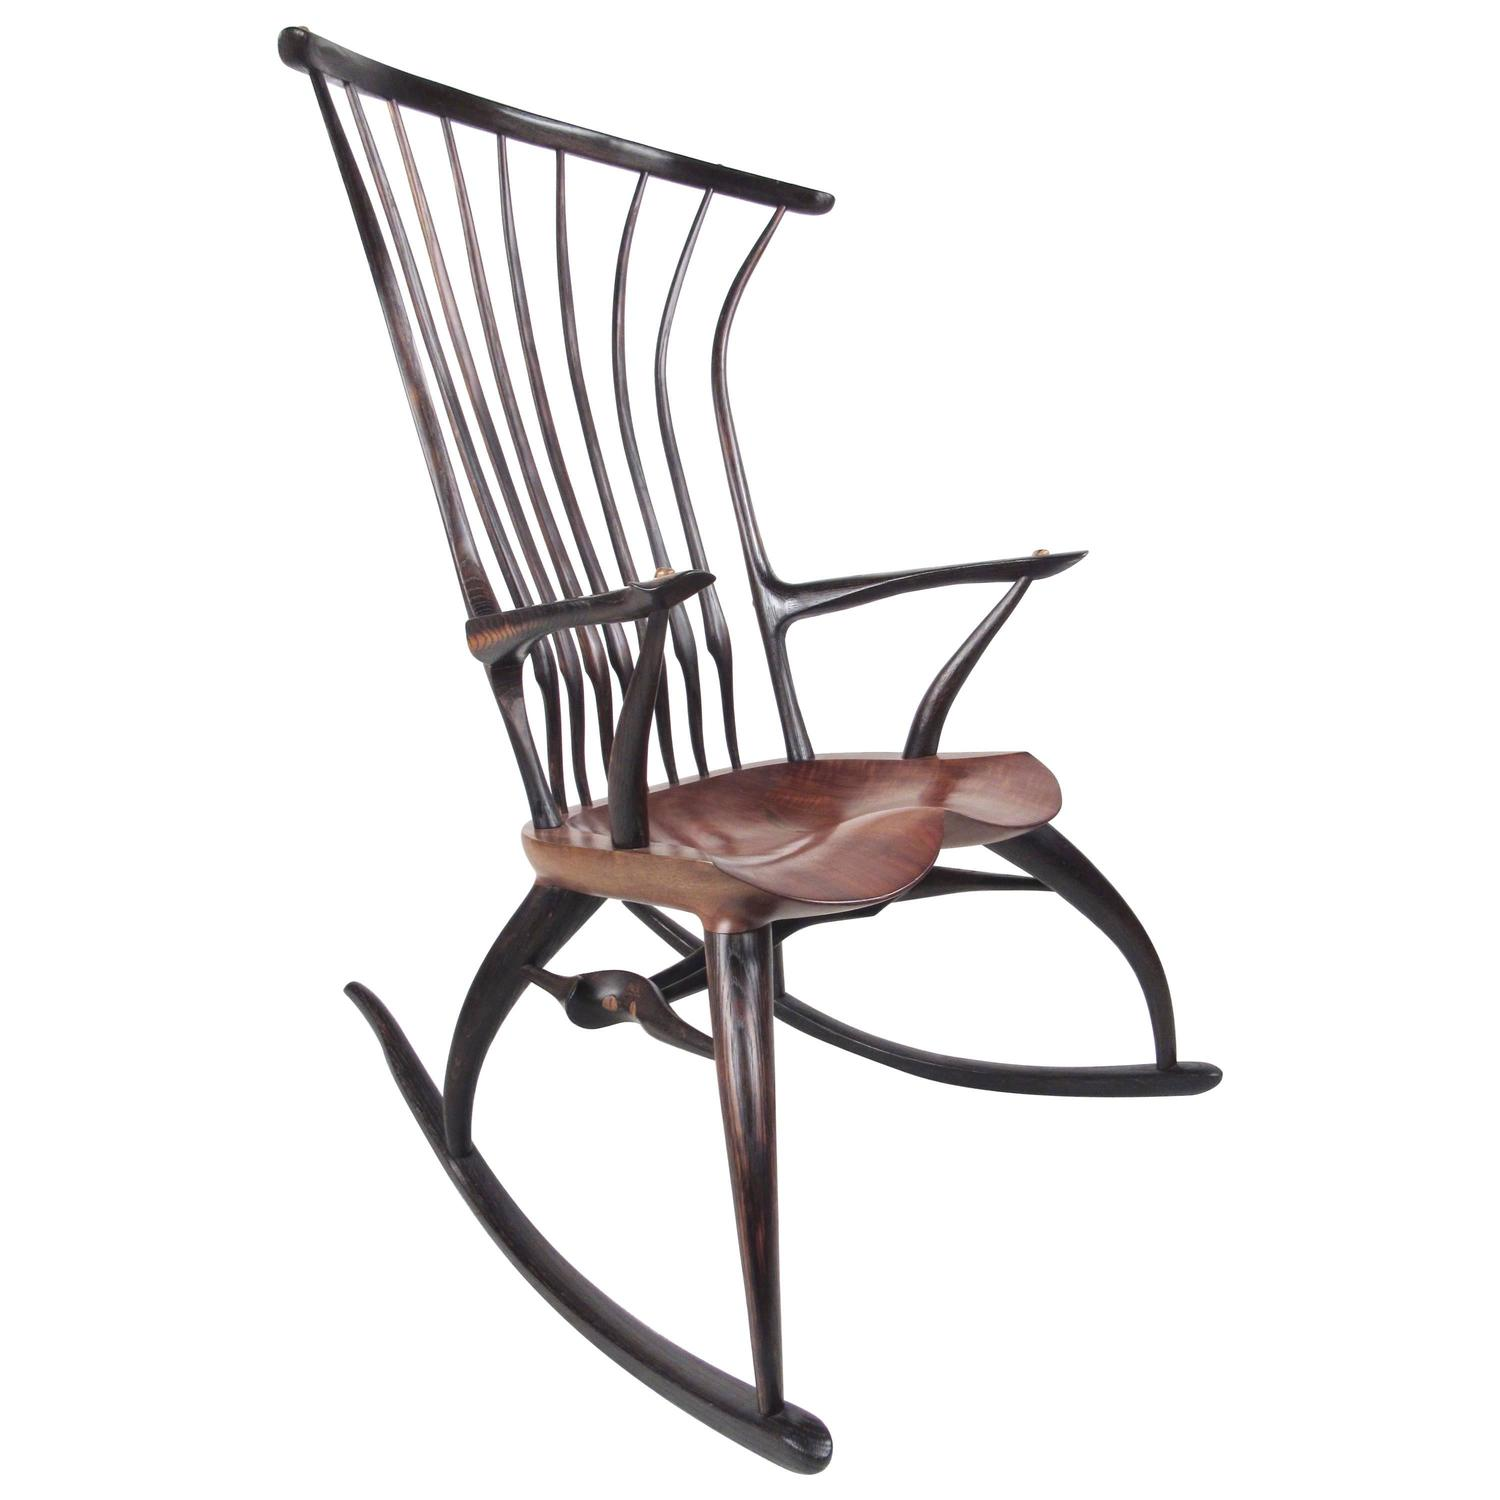 rustic rocking chair white outdoor dining australia modern sculptural windsor by joe